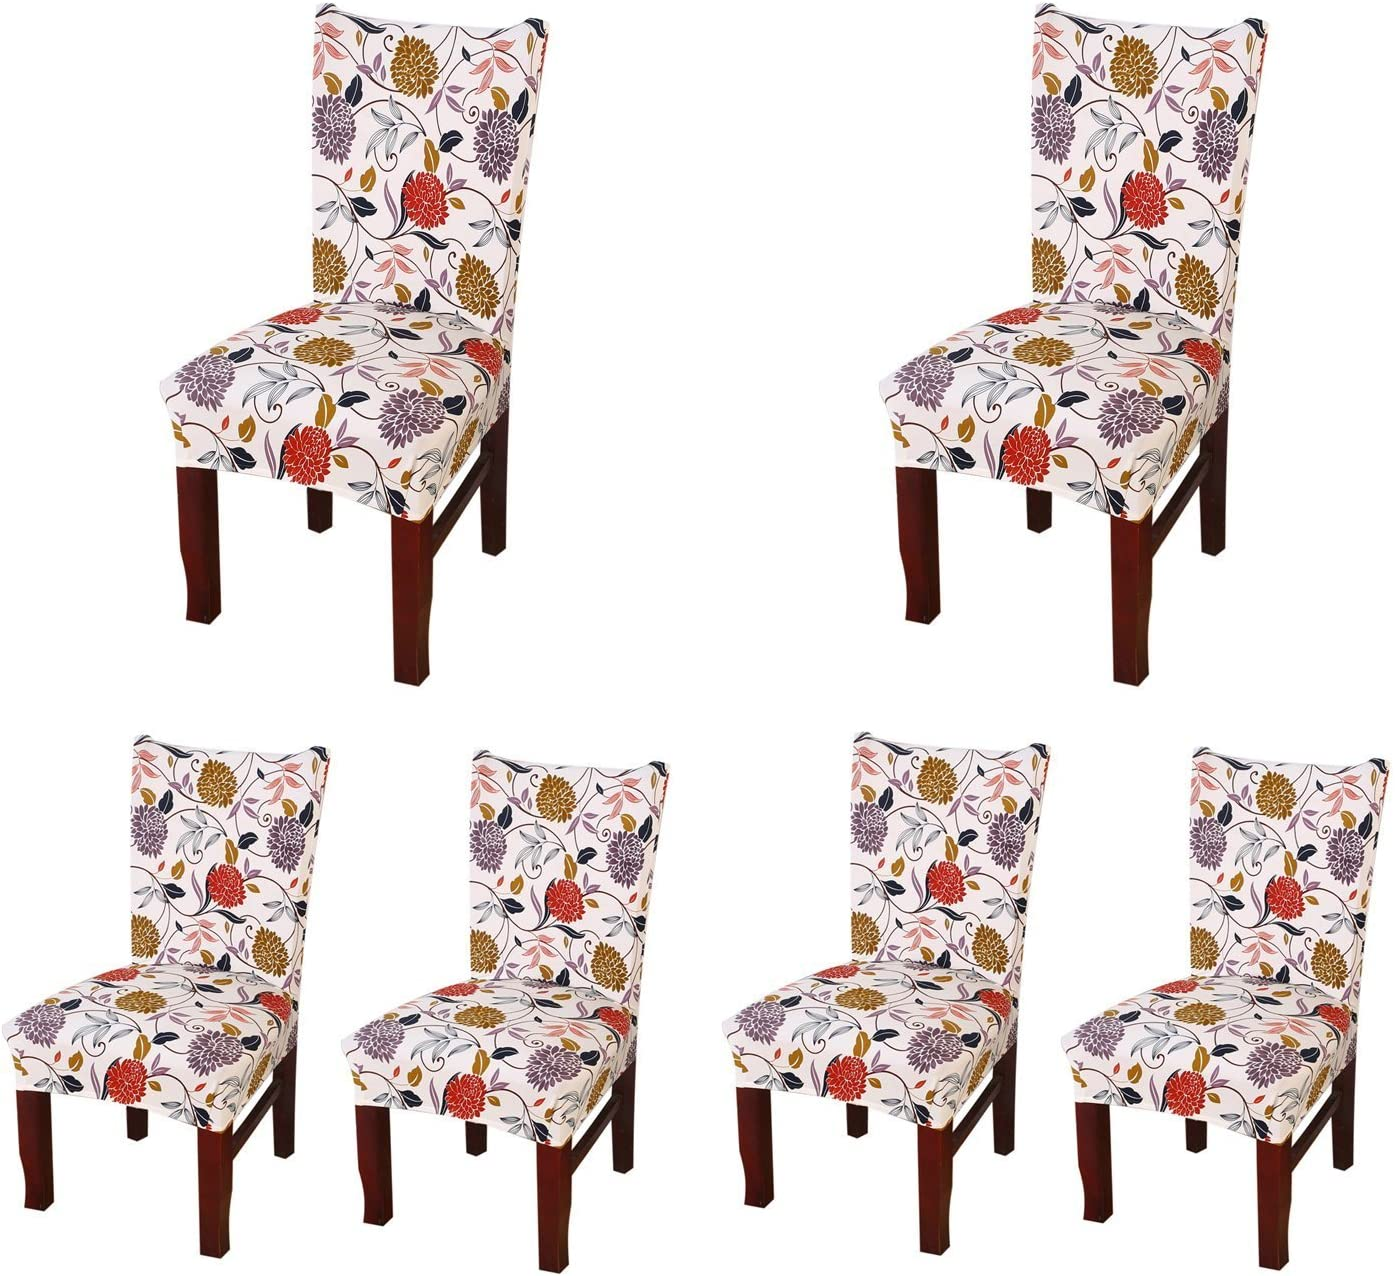 SoulFeel Set of 6 x Stretchable Dining Chair Covers, Spandex Chair Seat Protector Slipcovers for Holiday Banquet, Home Party, Hotel, Wedding Ceremony (Style 35, Floral)